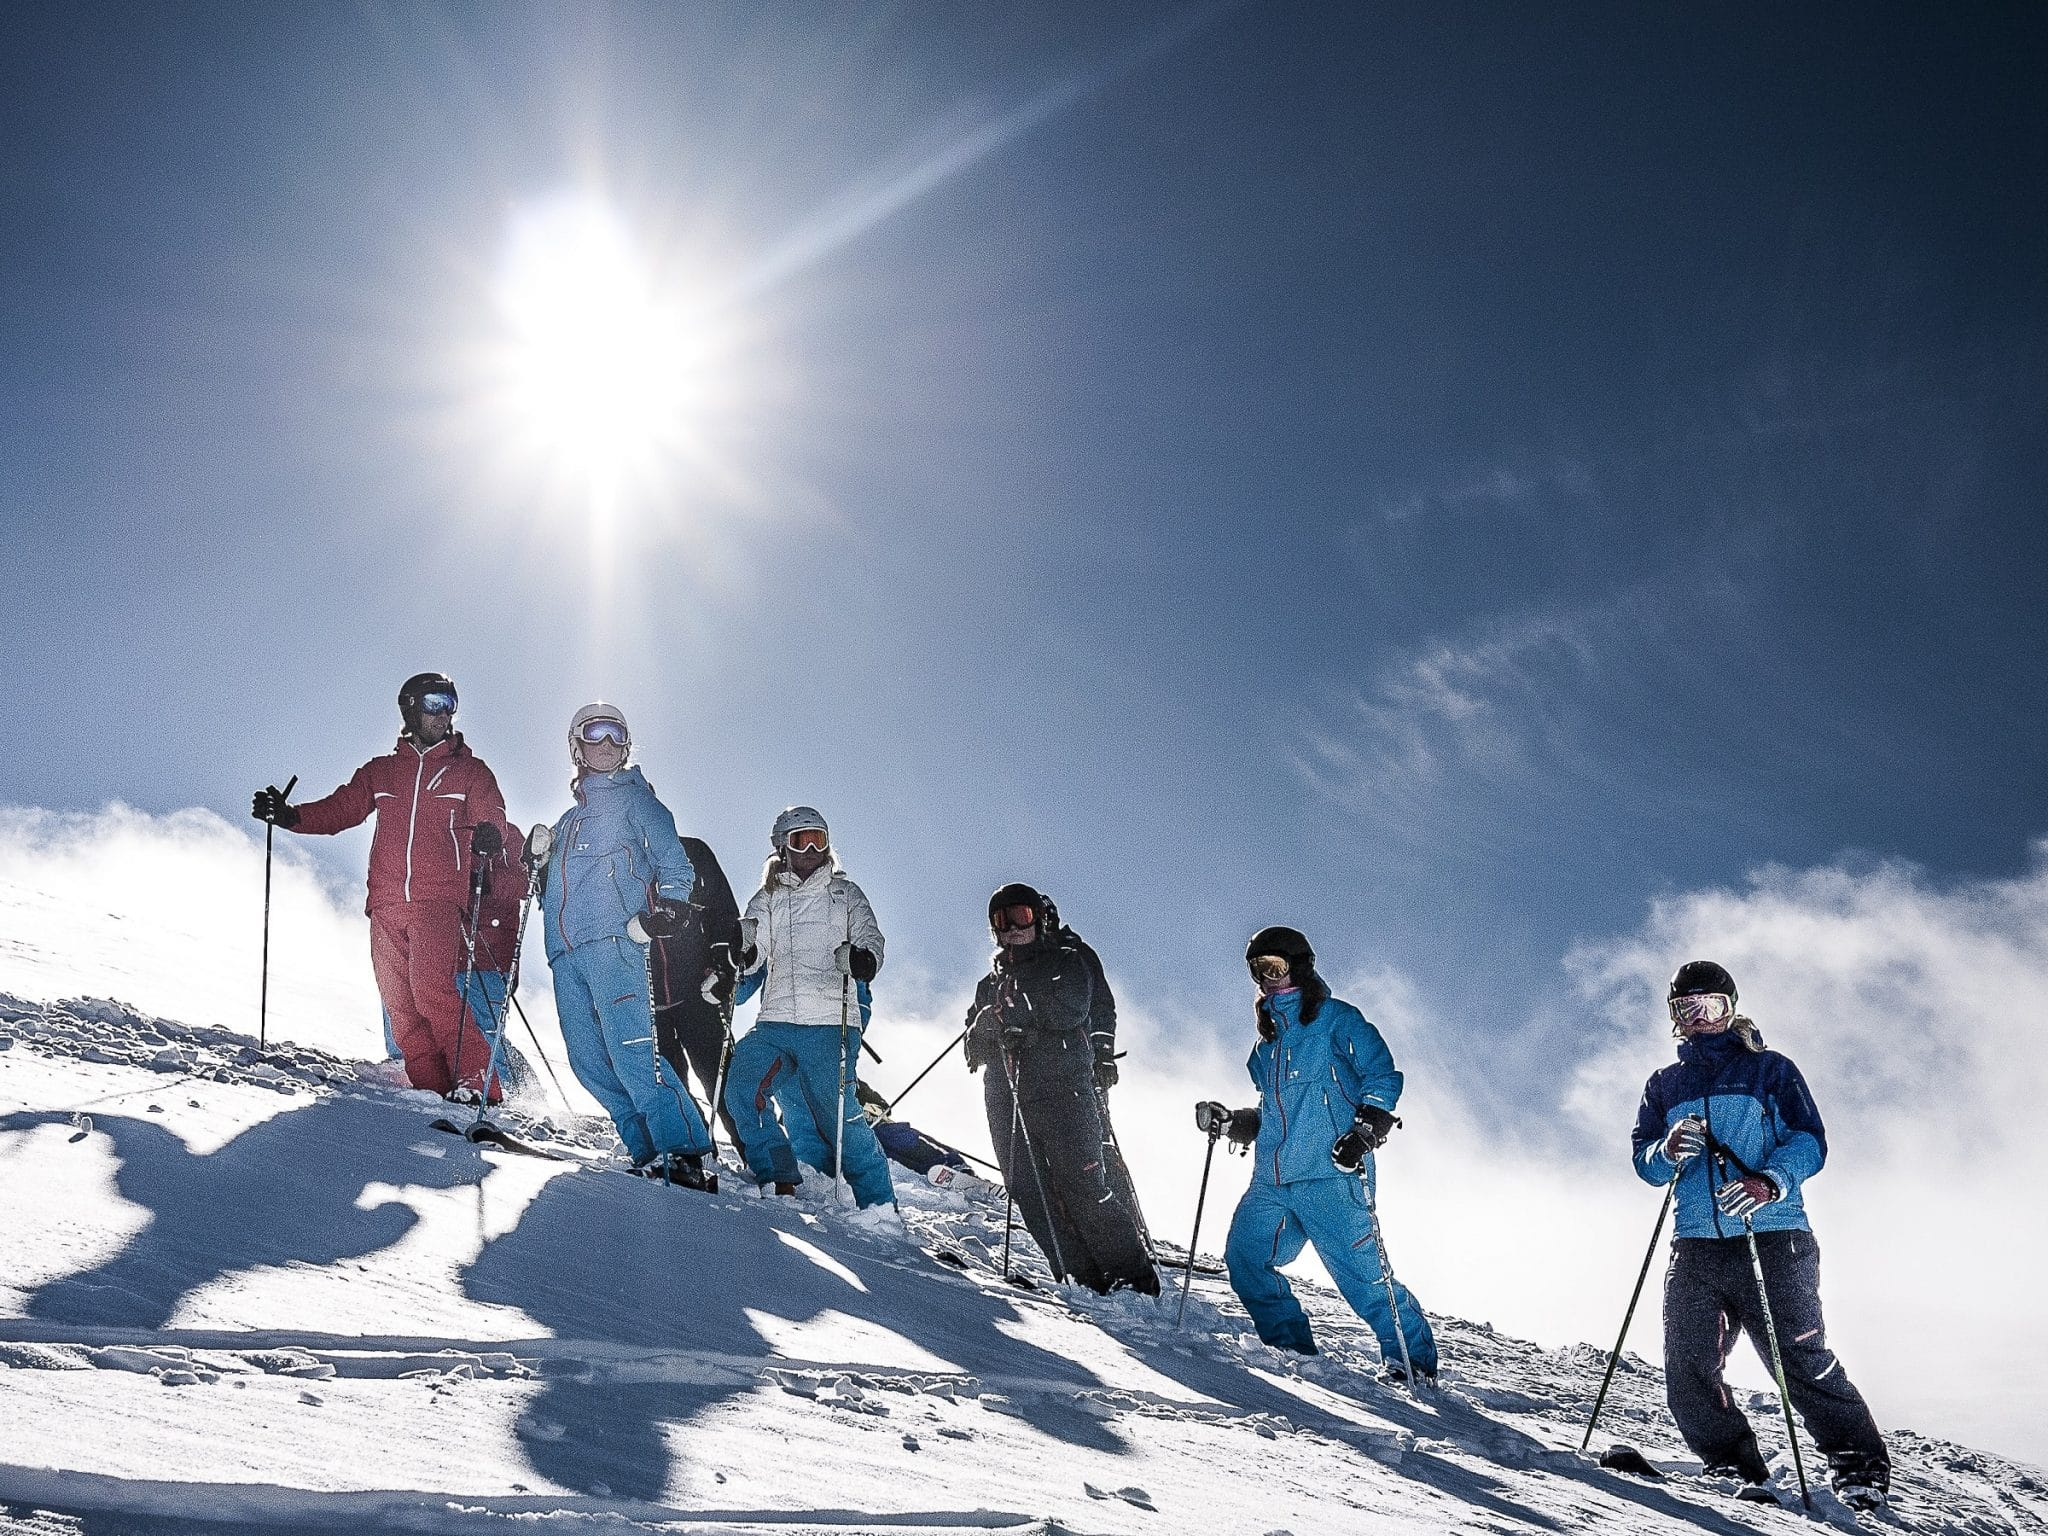 Group on skis on a sunny day